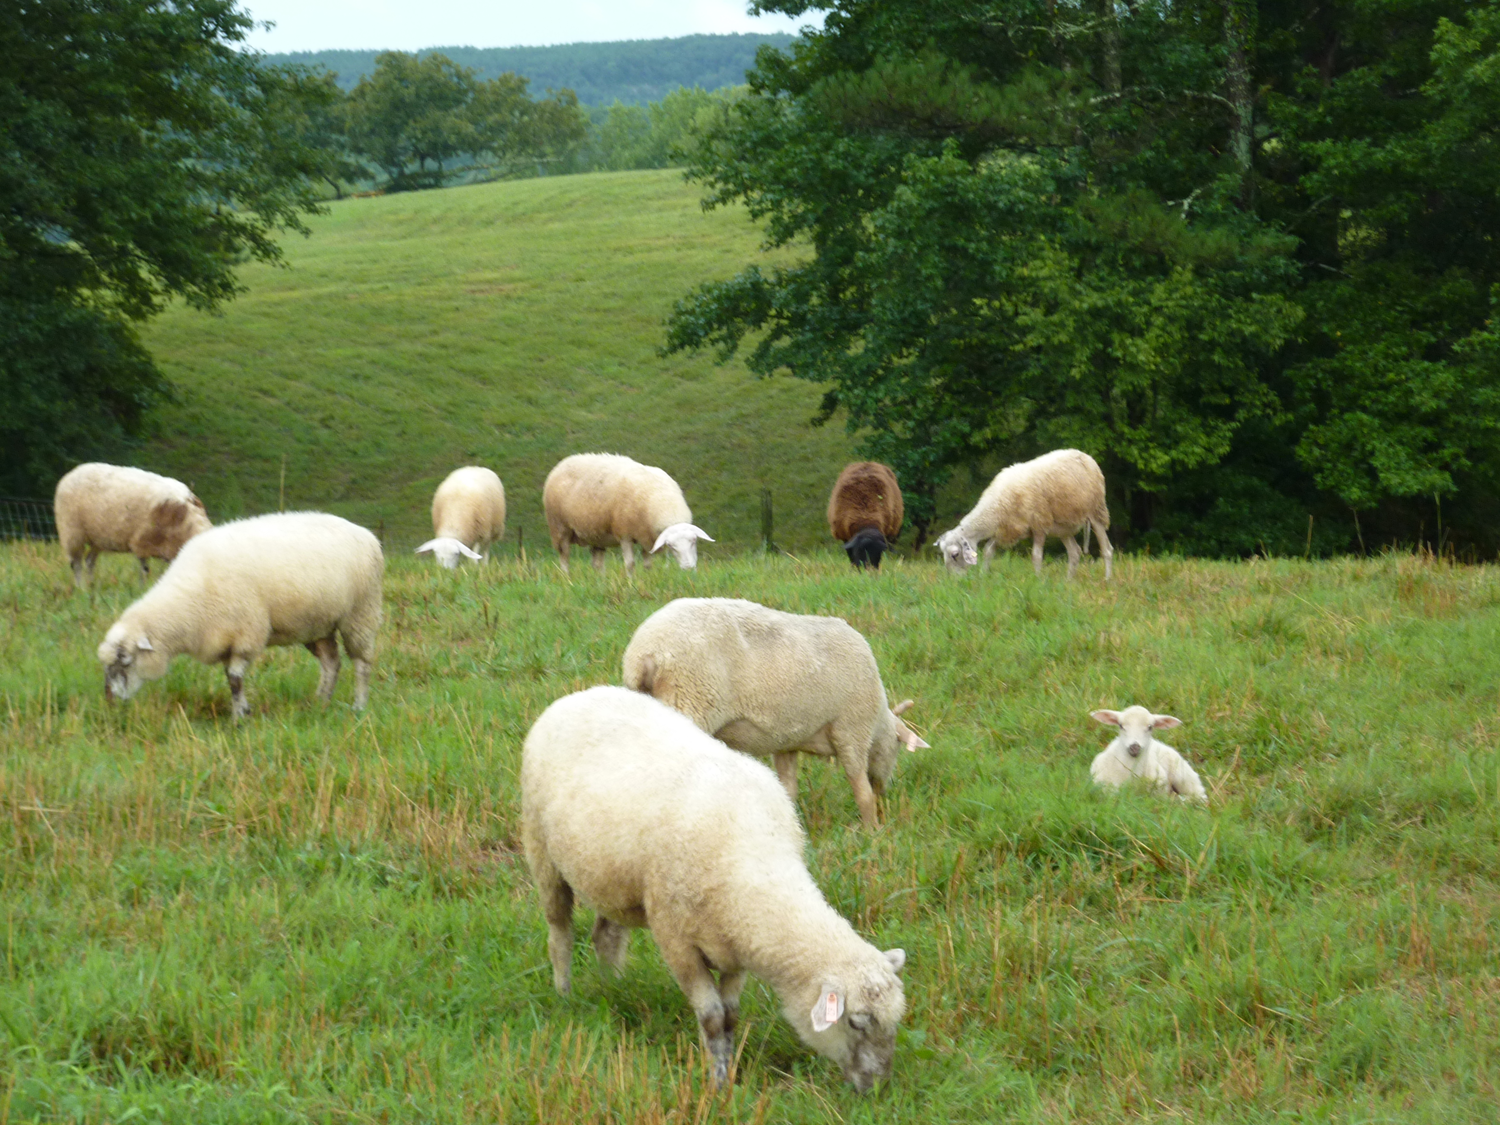 https://alabama-travel.s3.amazonaws.com/partners-uploads/photo/image/5785132cfa43963d4f0000d4/dsd_sheep_in_the_field.png